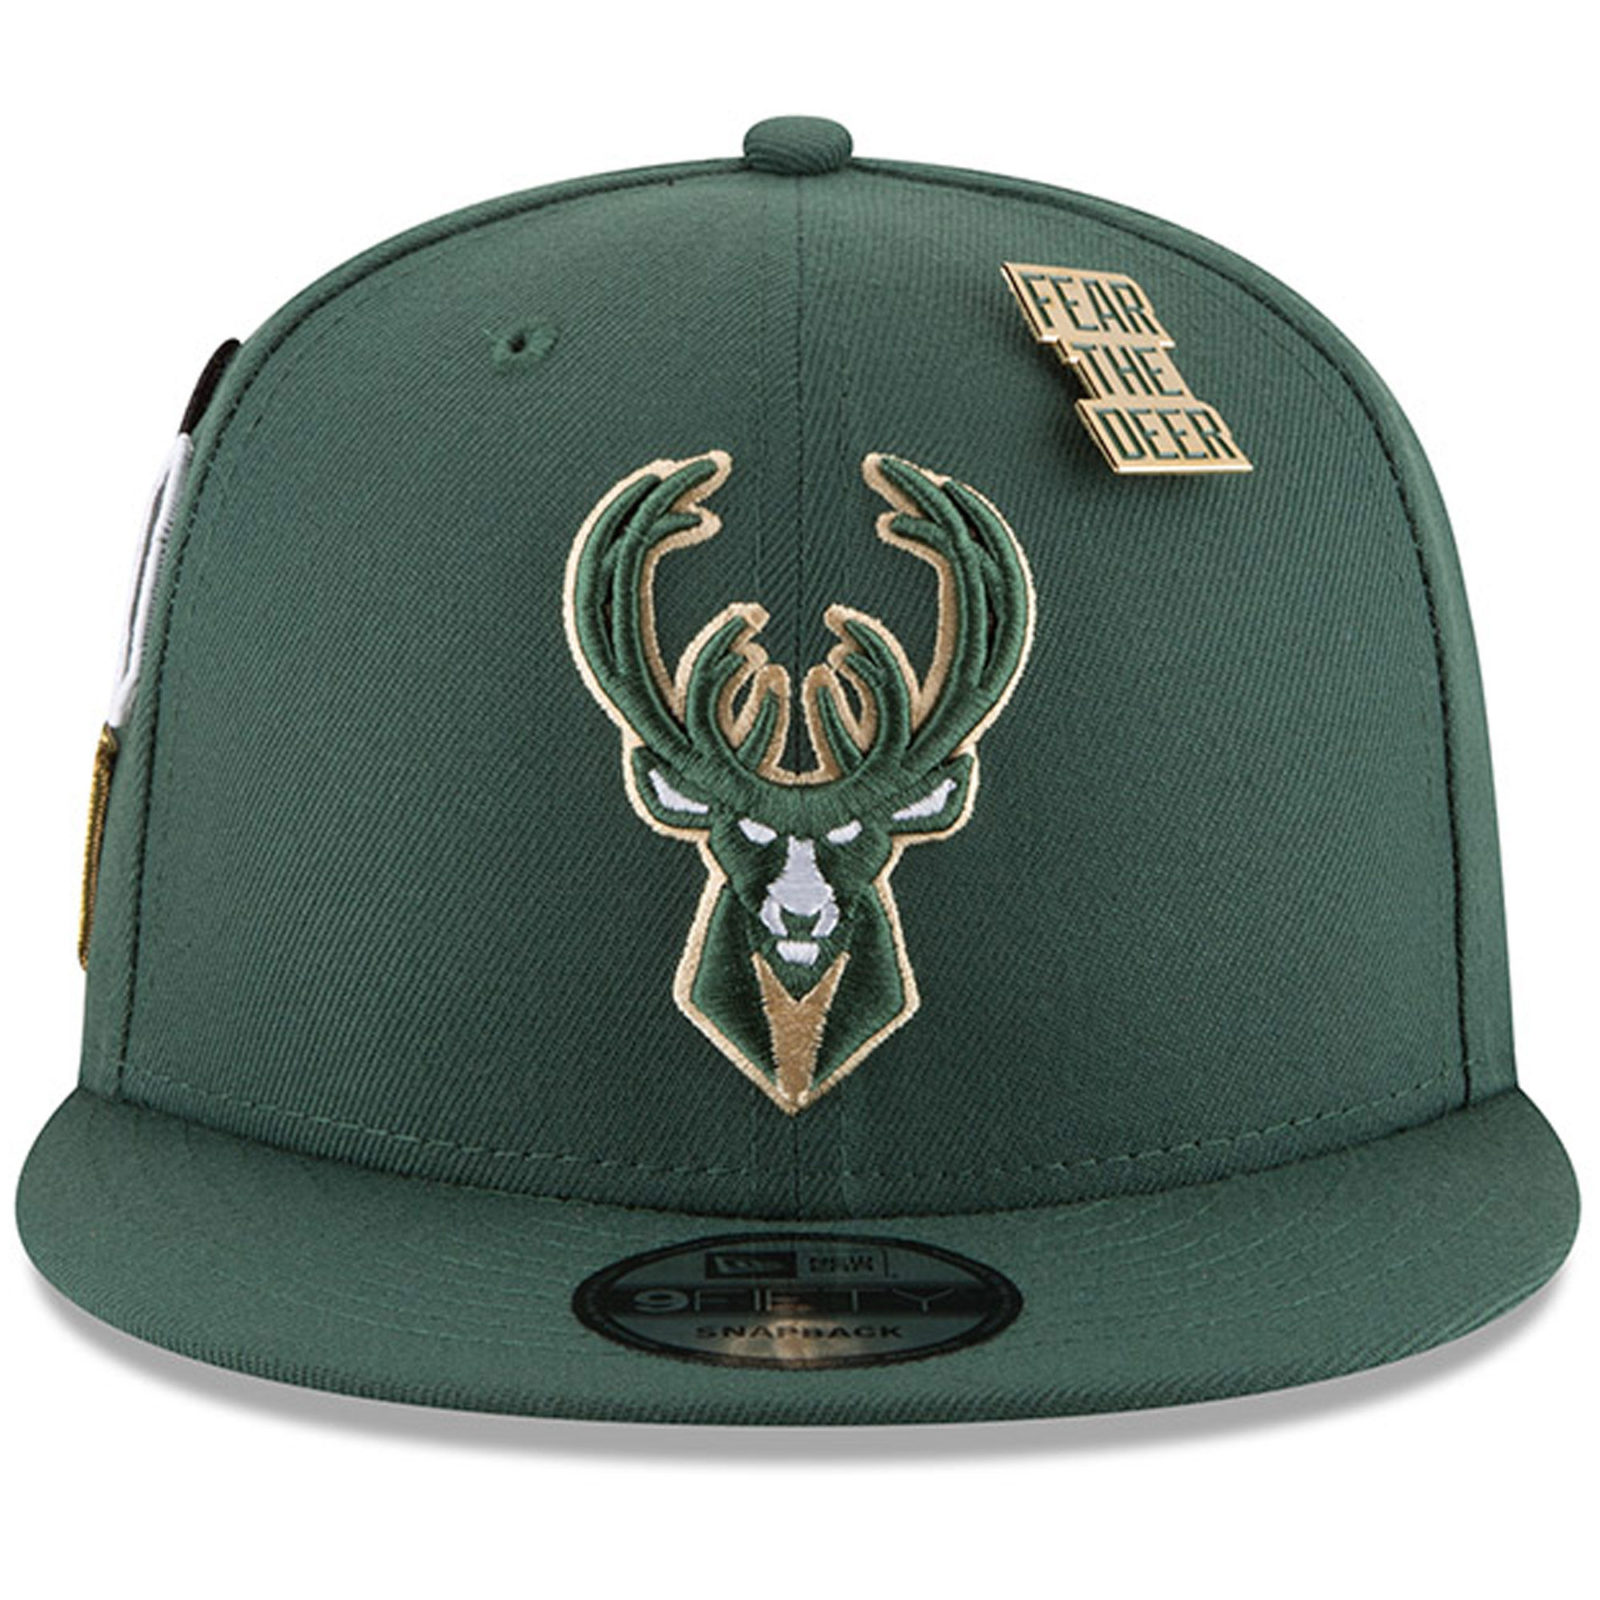 7ee83a351aa Milwaukee Bucks New Era 2018 Draft 9FIFTY Snapback Adjustable Hat – Green